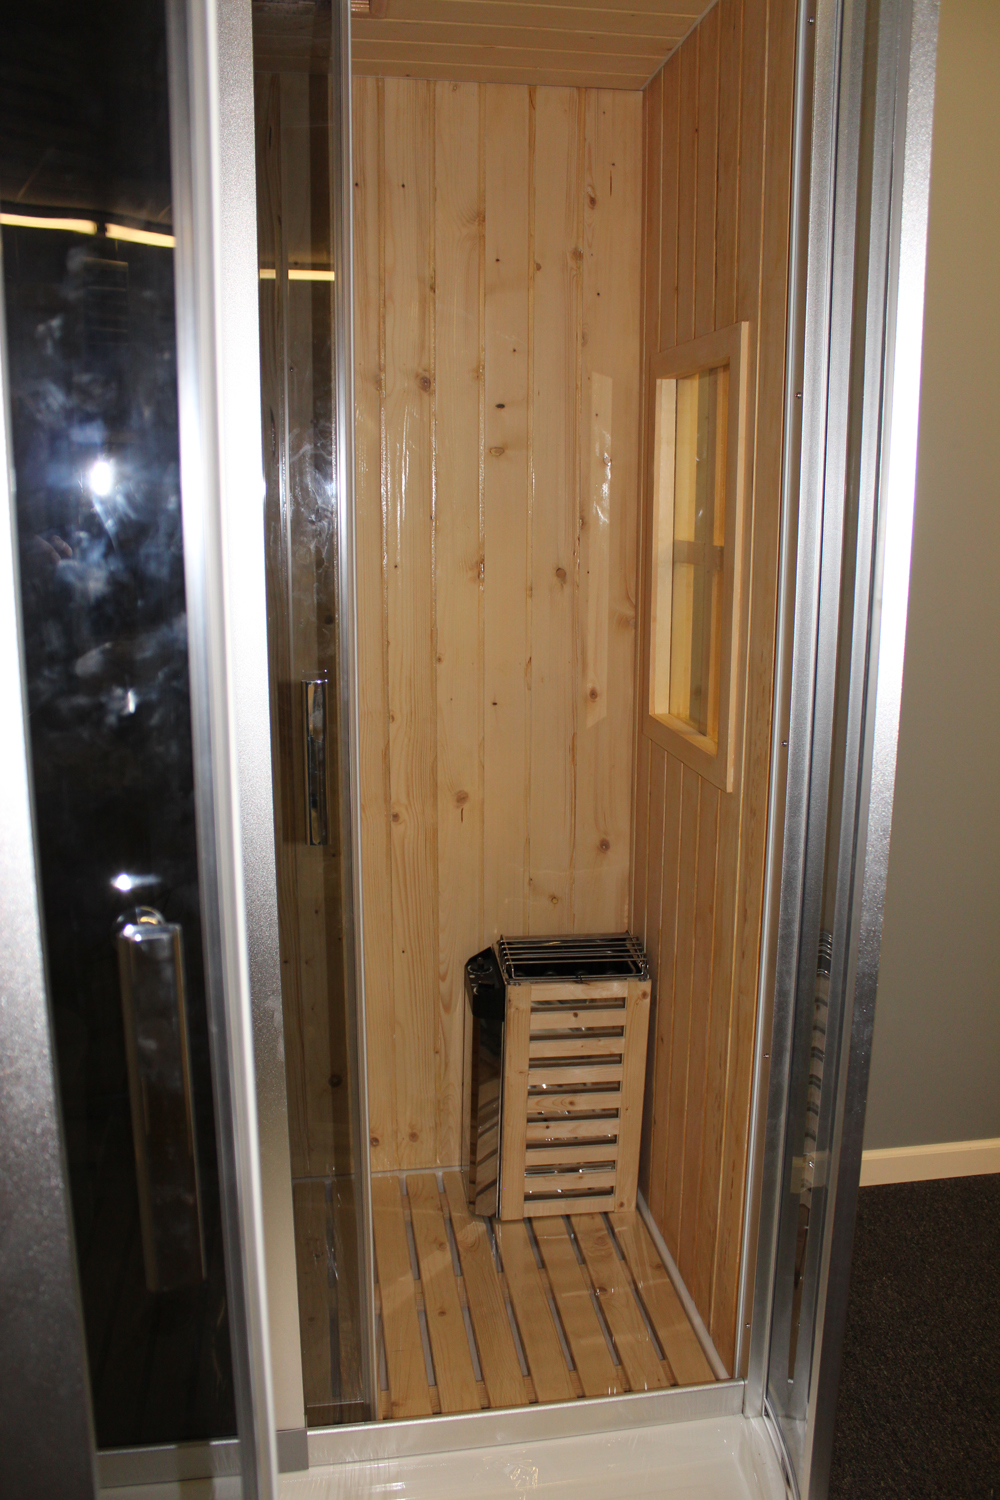 80 Best Sauna Images On Pinterest: Deluxe Shower / Dry Sauna Combo System + Steam Cabin. B001